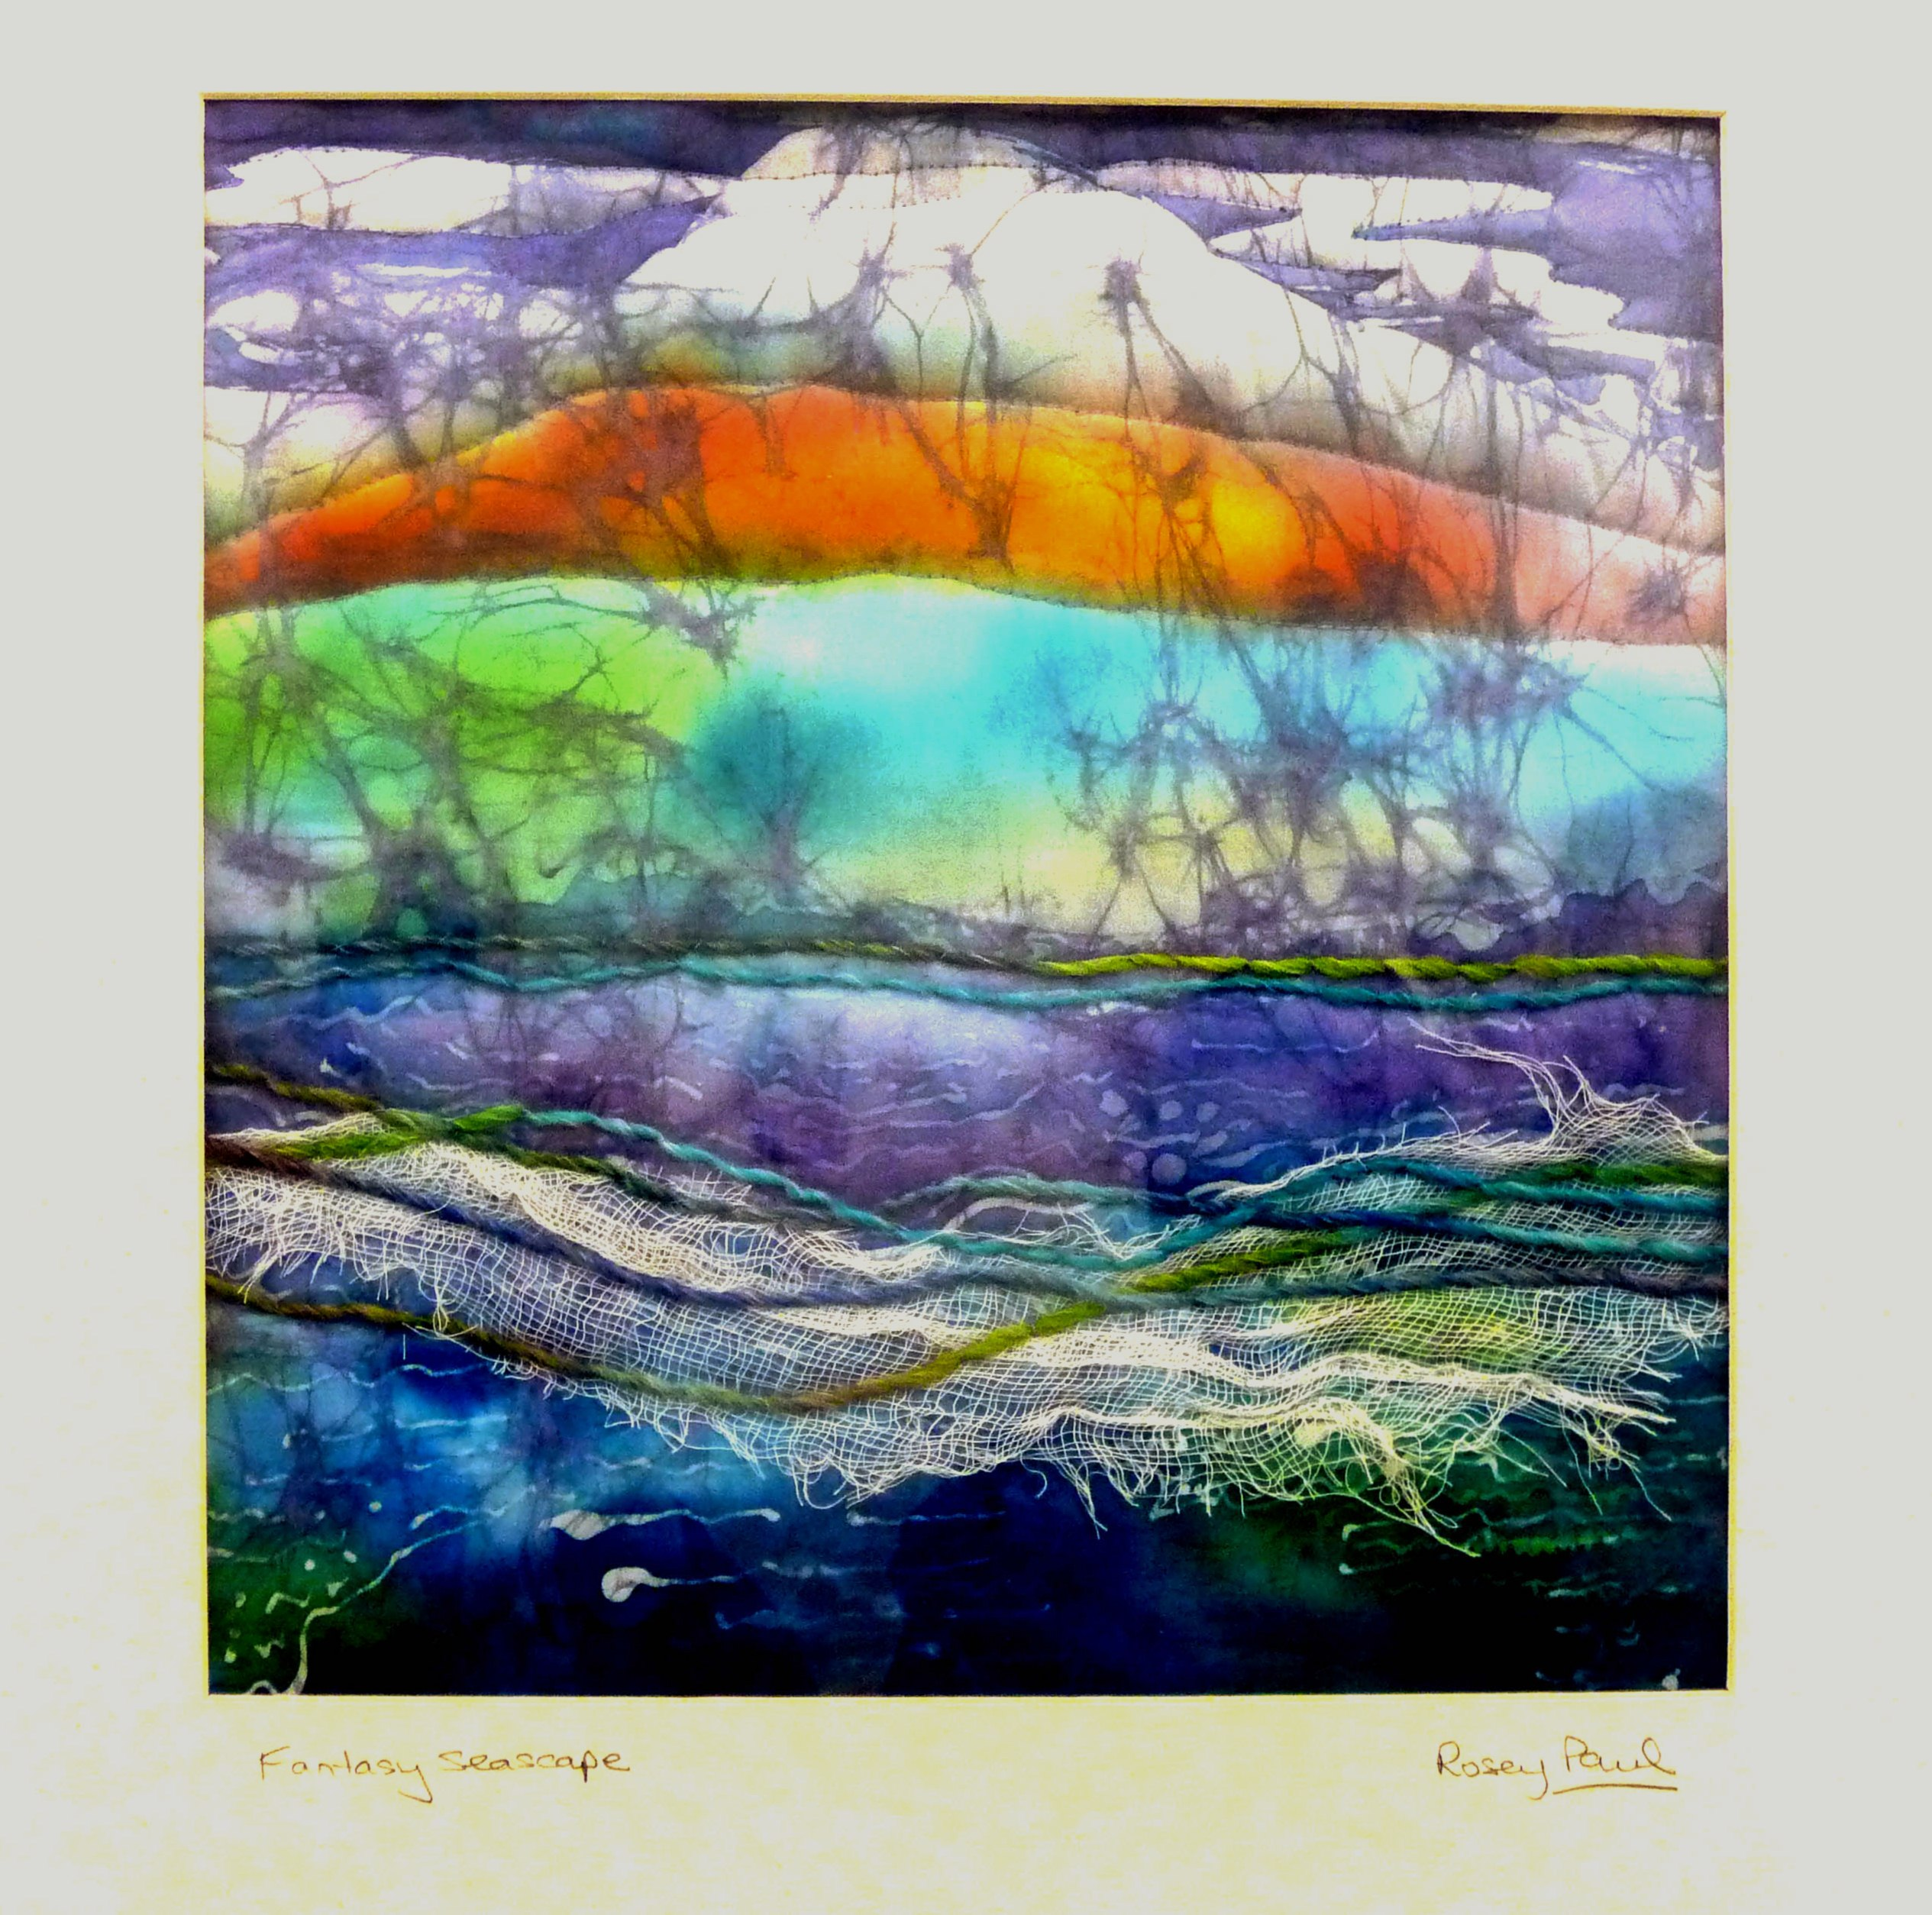 FANTASY SEASCAPE by Rosey Paul, textile